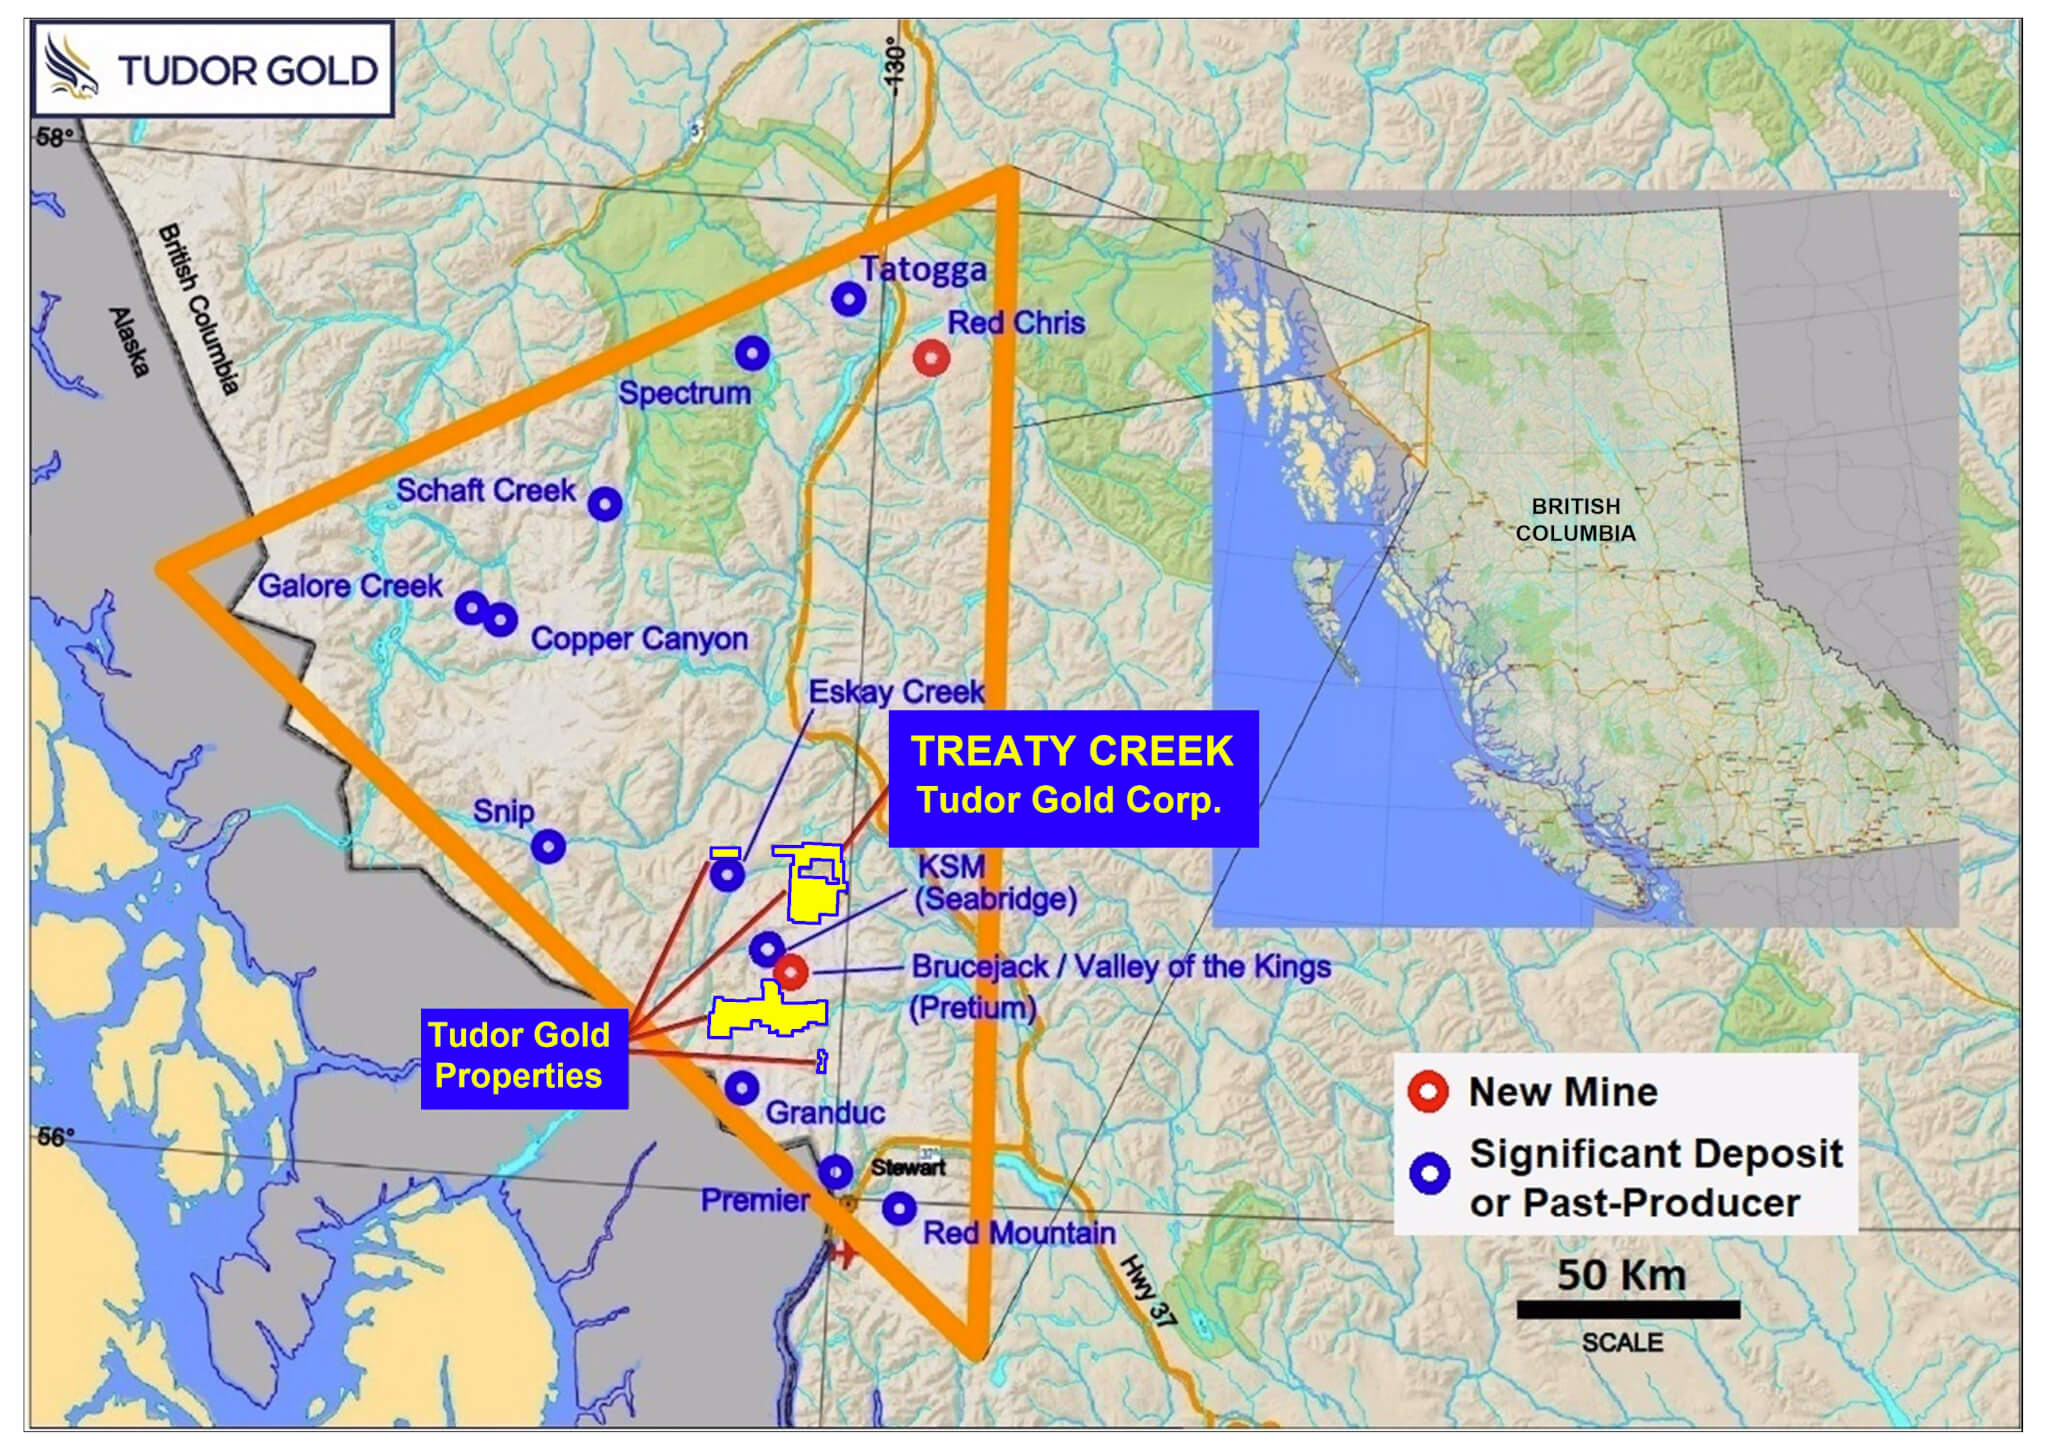 Gold Mines In Canada Map TUDOR GOLD – The newest major discovery in the Golden Triangle